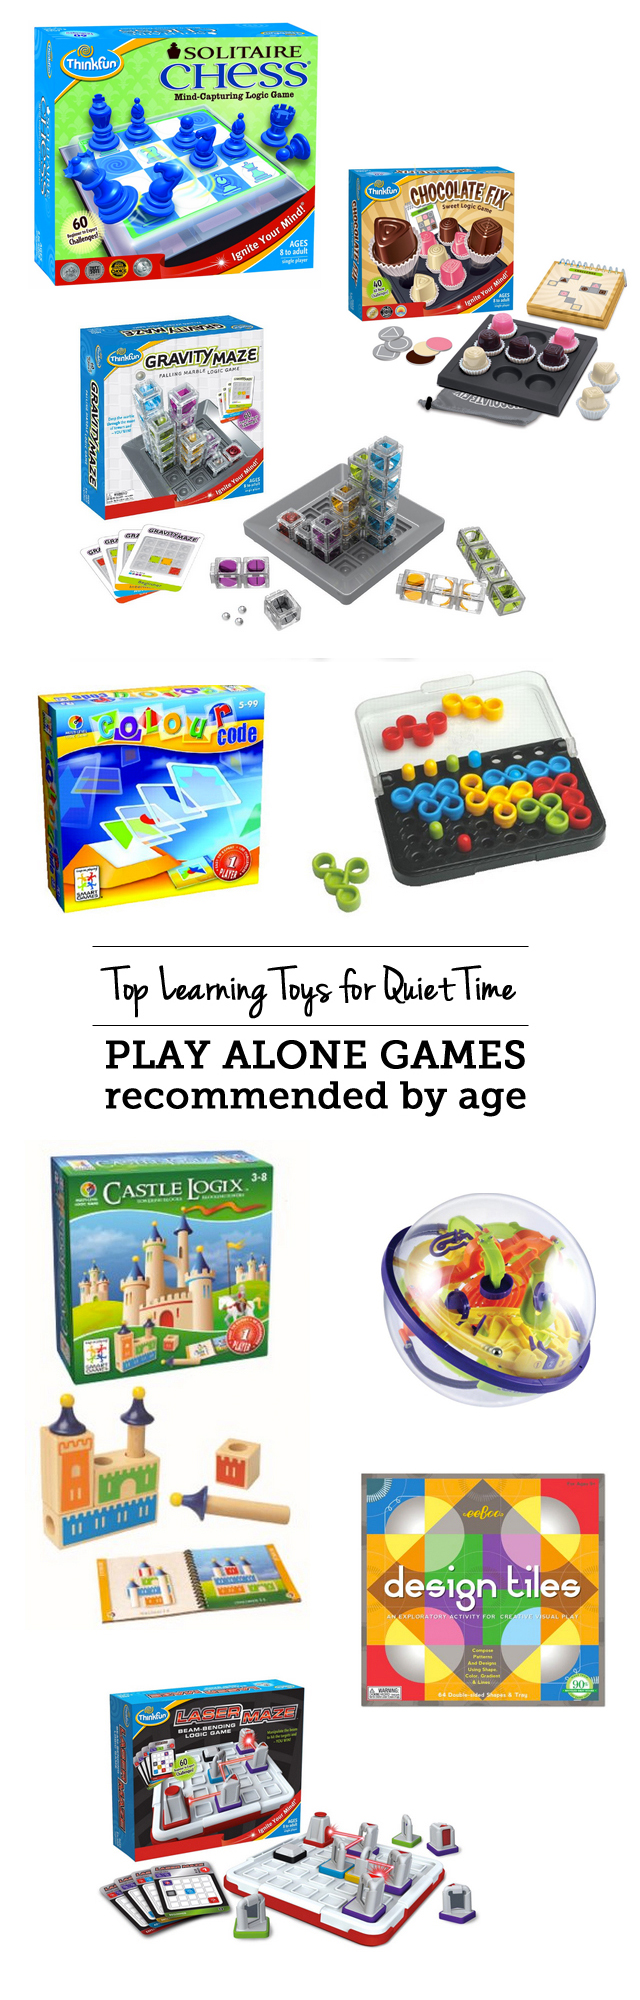 MPMK Gift Guide: Top Learning Toys for Quiet Time ...